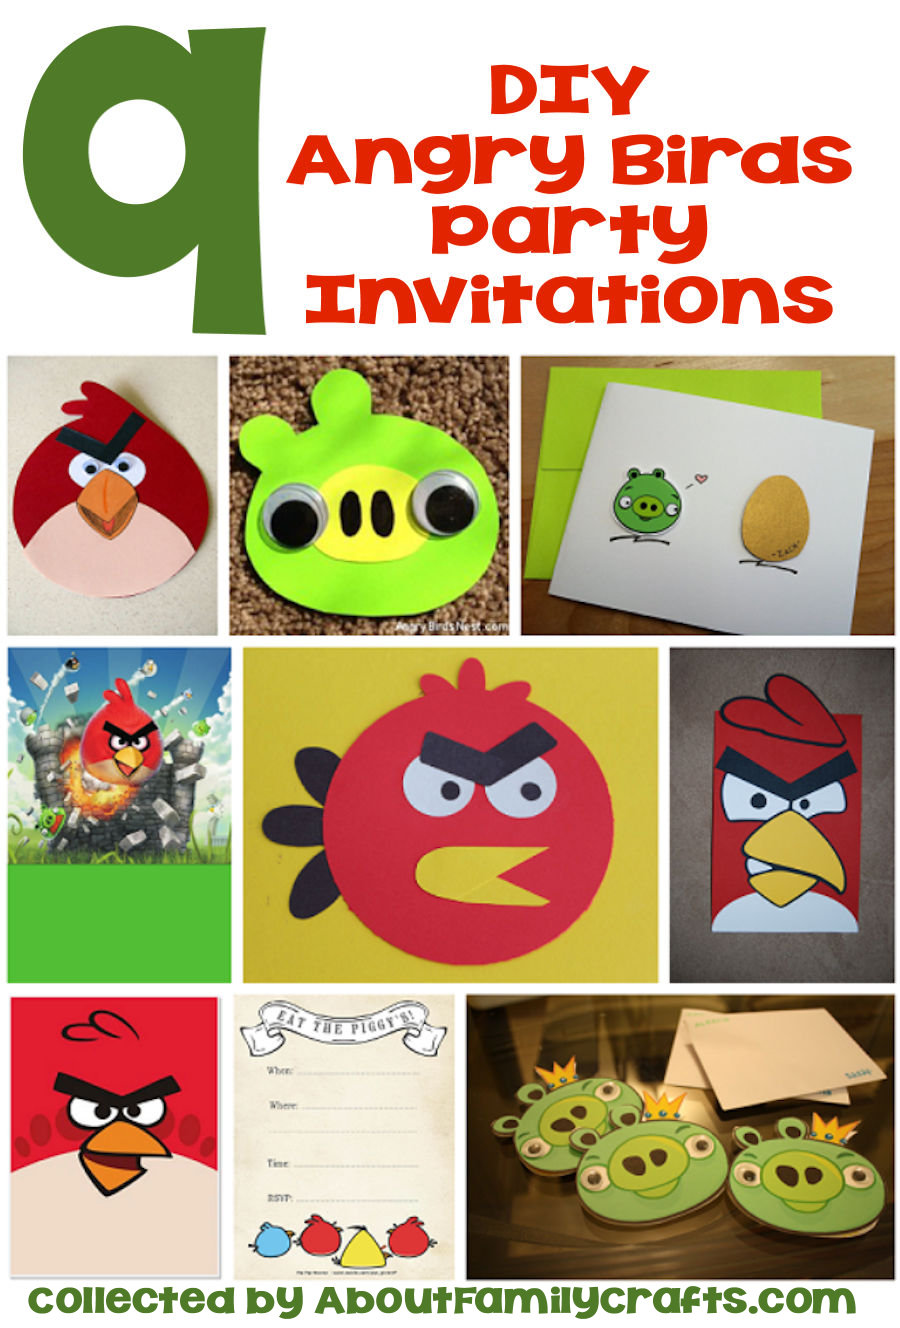 65 diy angry birds party ideas about family crafts for Angry bird birthday decoration ideas